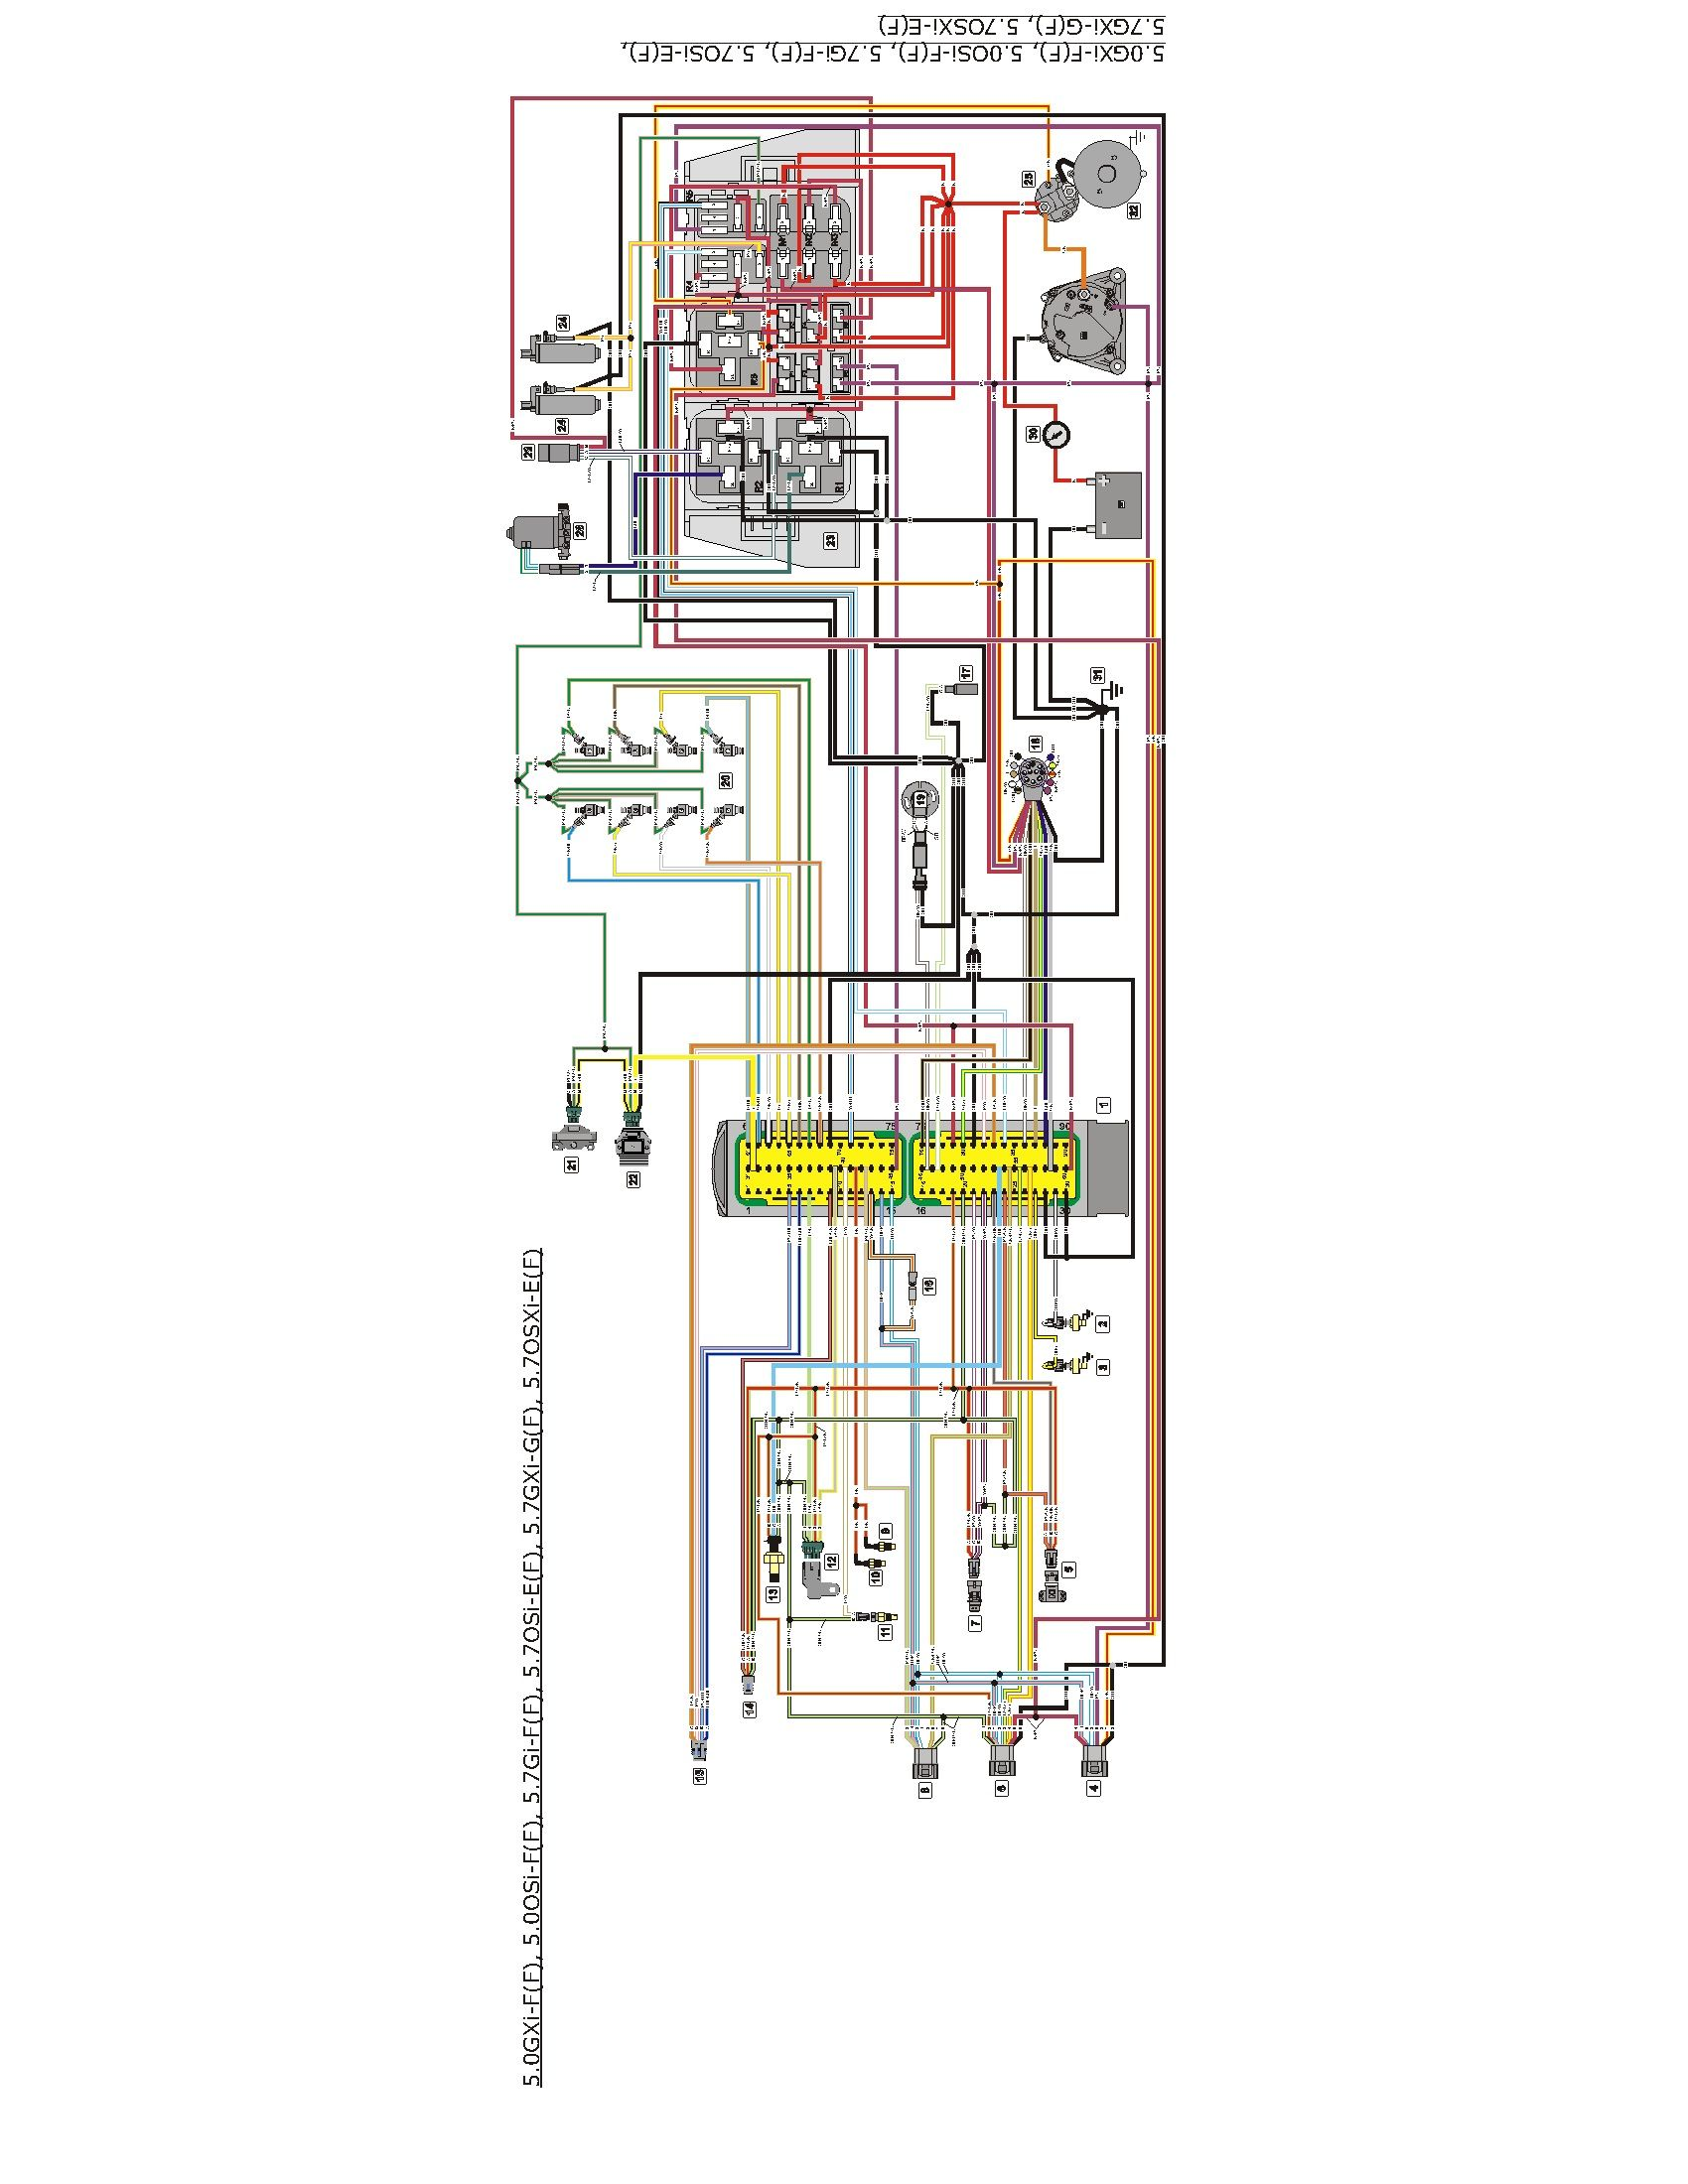 small resolution of 1985 volvo alternator wiring everything wiring diagram 1985 volvo alternator wiring